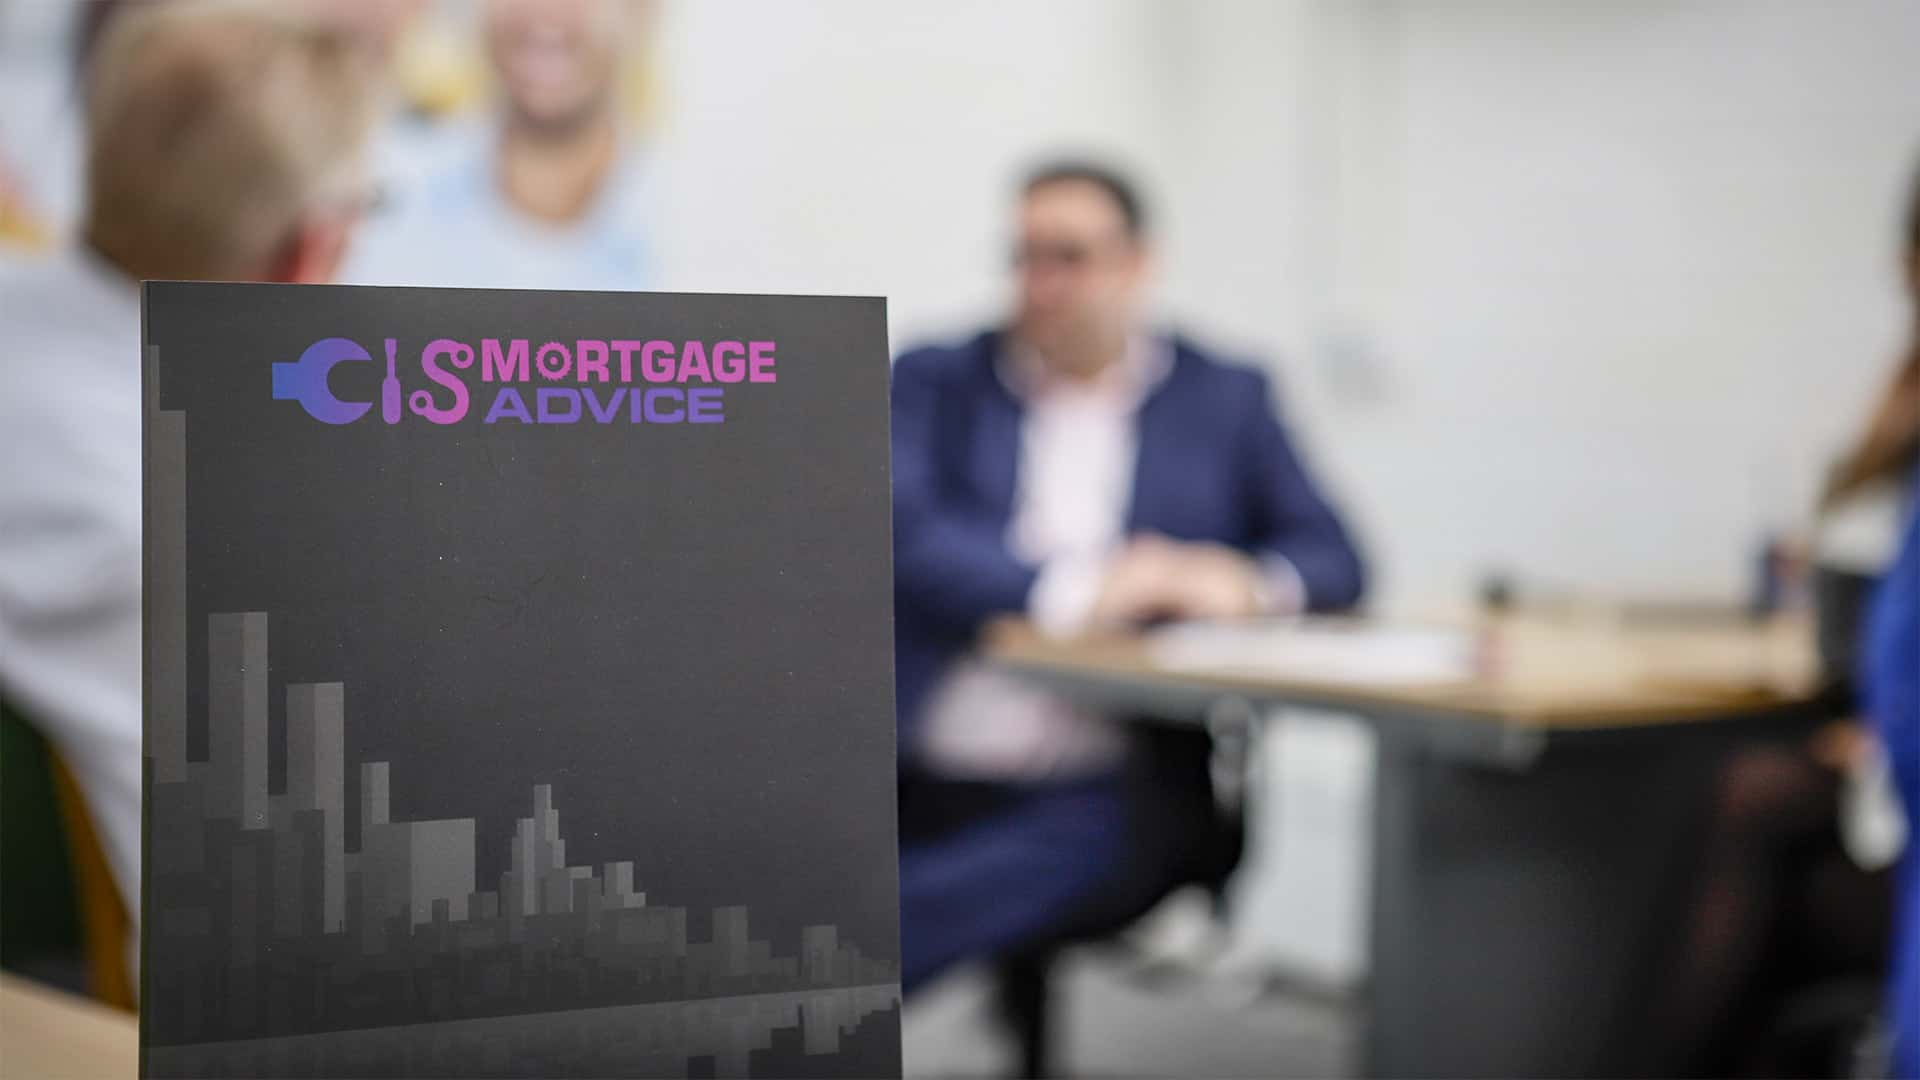 CIS Mortgage Advice